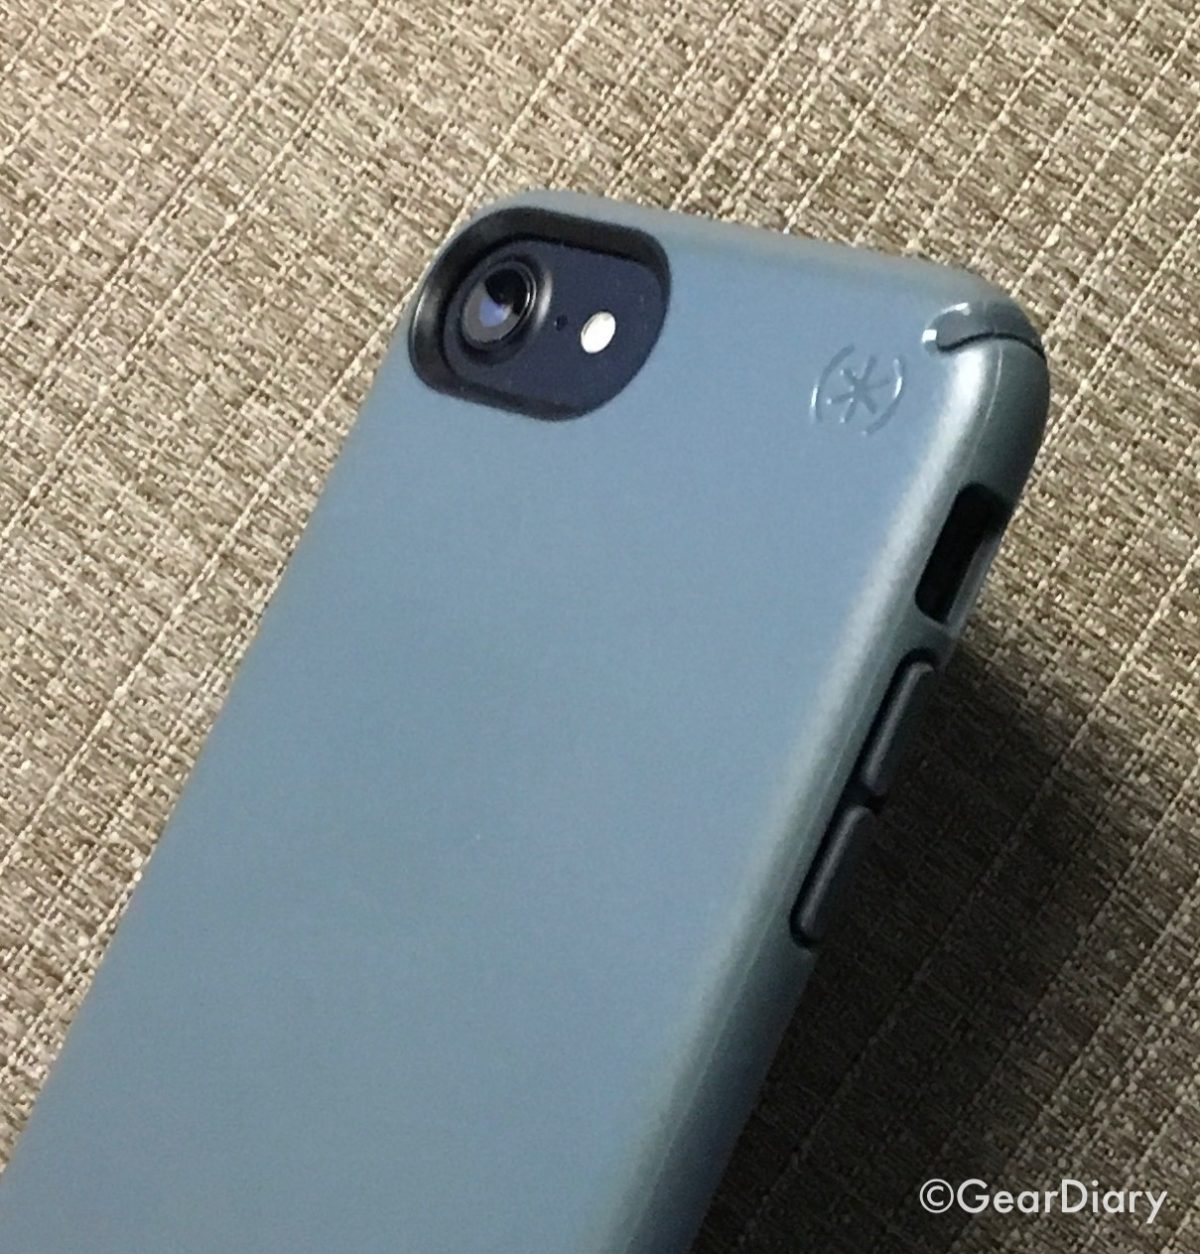 official photos 0d637 01519 Speck Presidio for iPhone 7 Has Me Back Digging Speck's Cases